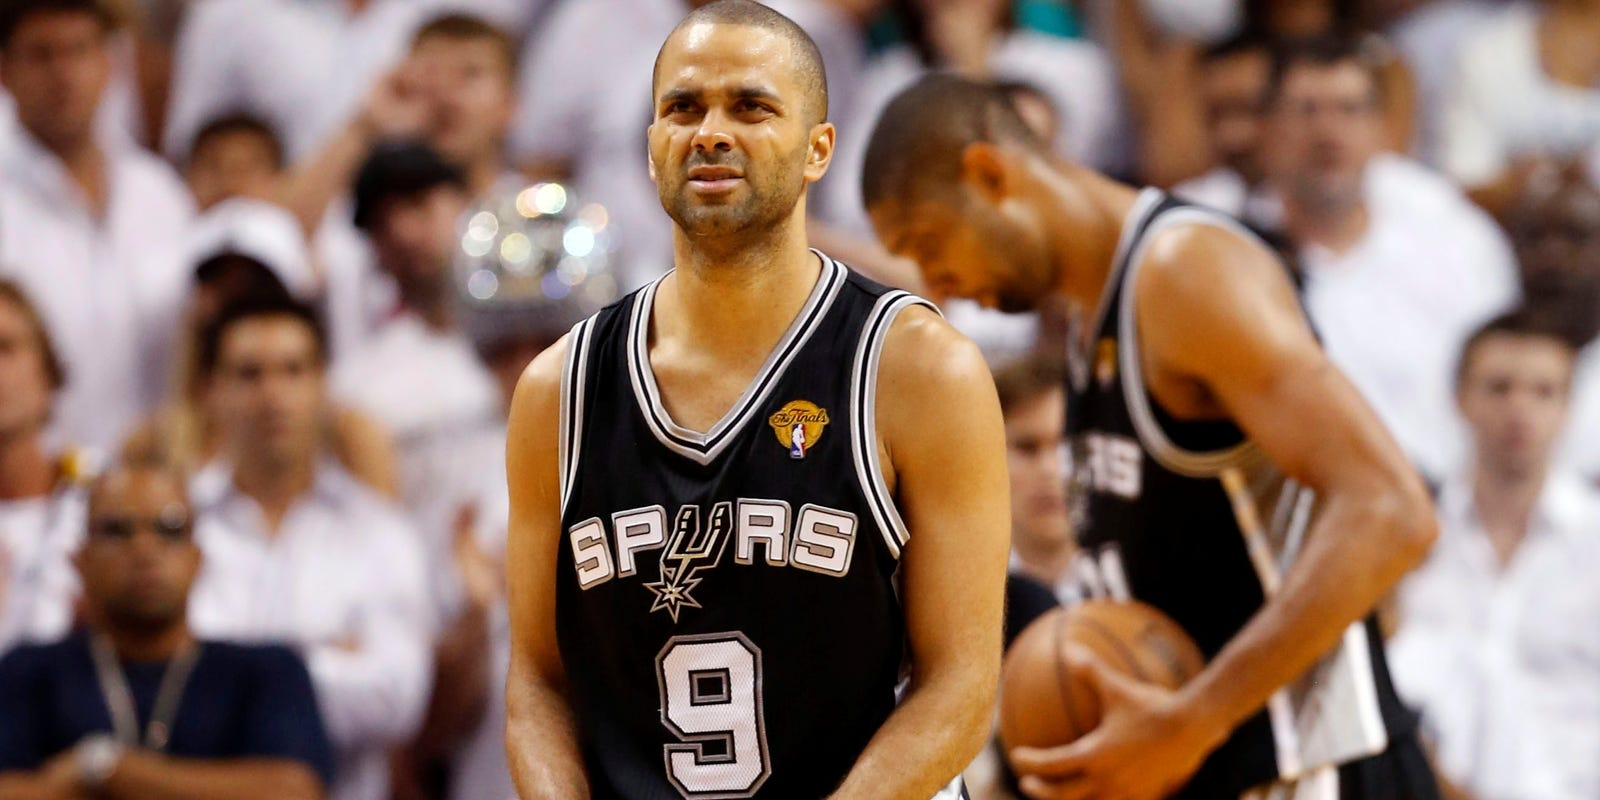 San Antonio Spurs 'devastated' over coughing up Game 6